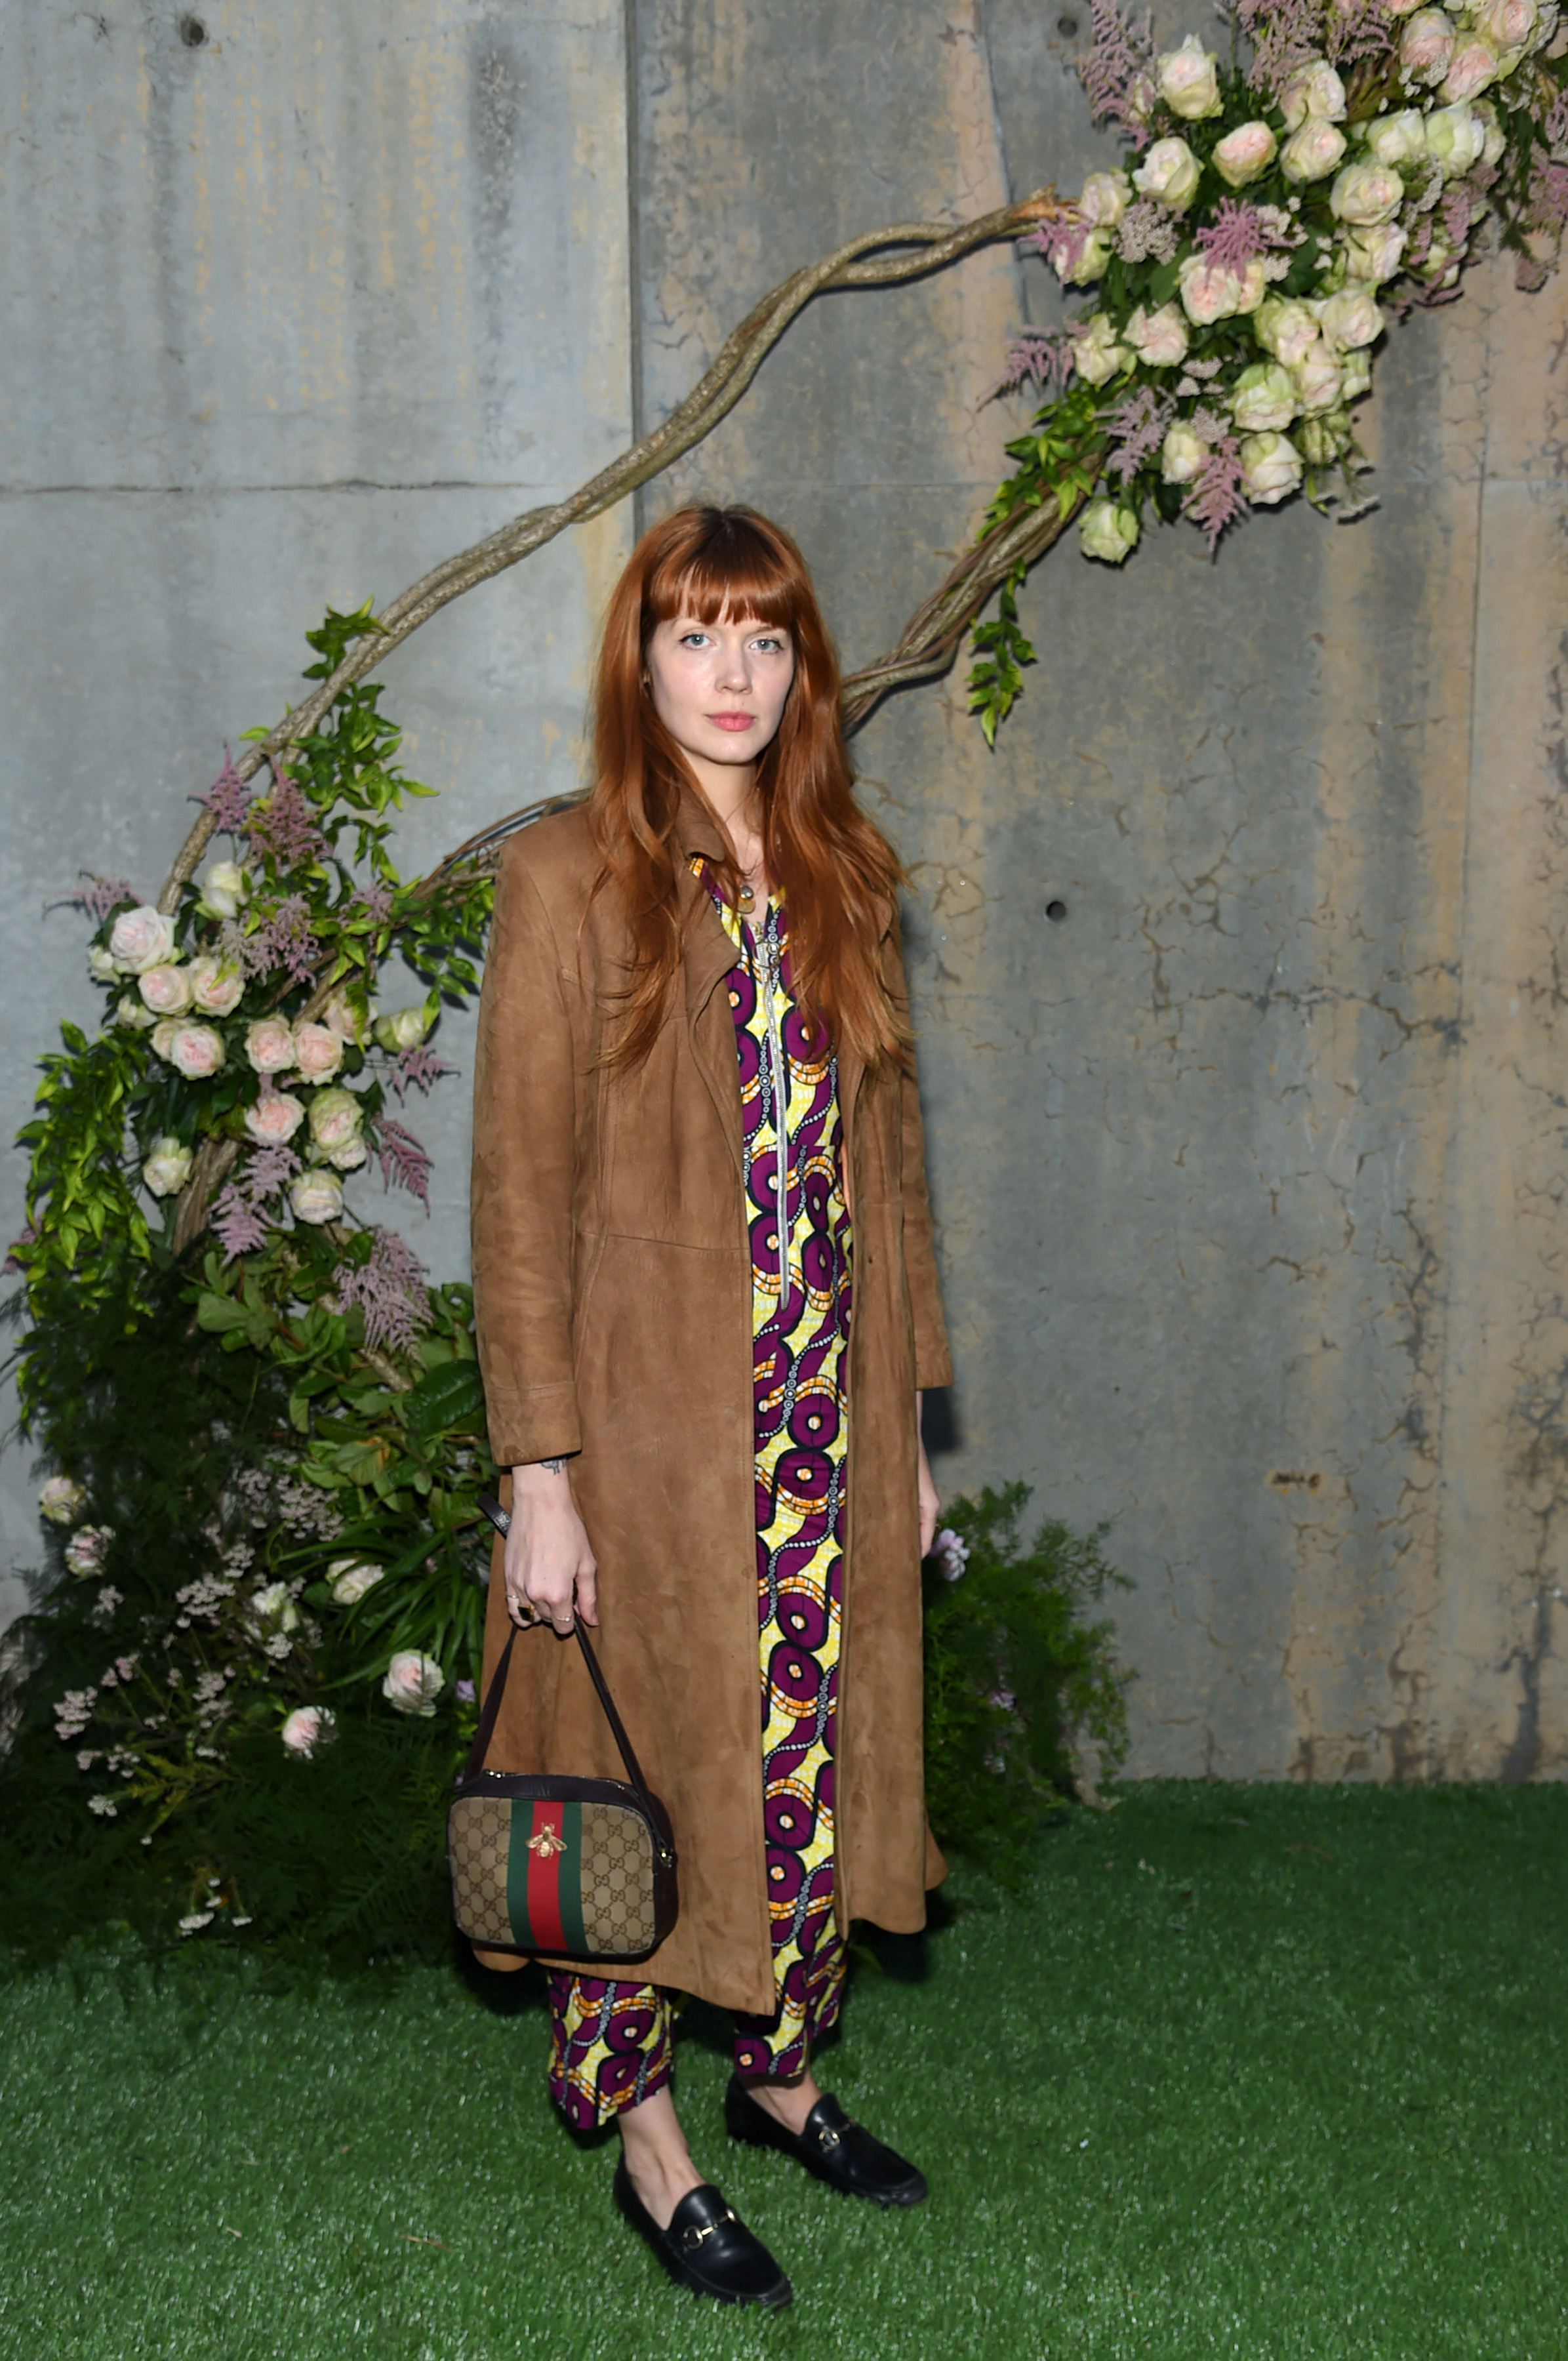 NEW YORK, NY - MAY 02: Designer Briana Lance attends the Gucci Bloom Fragrance Launch at MoMA PS.1 on May 2, 2017 in New York City. (Photo by Jamie McCarthy/Getty Images for Gucci)